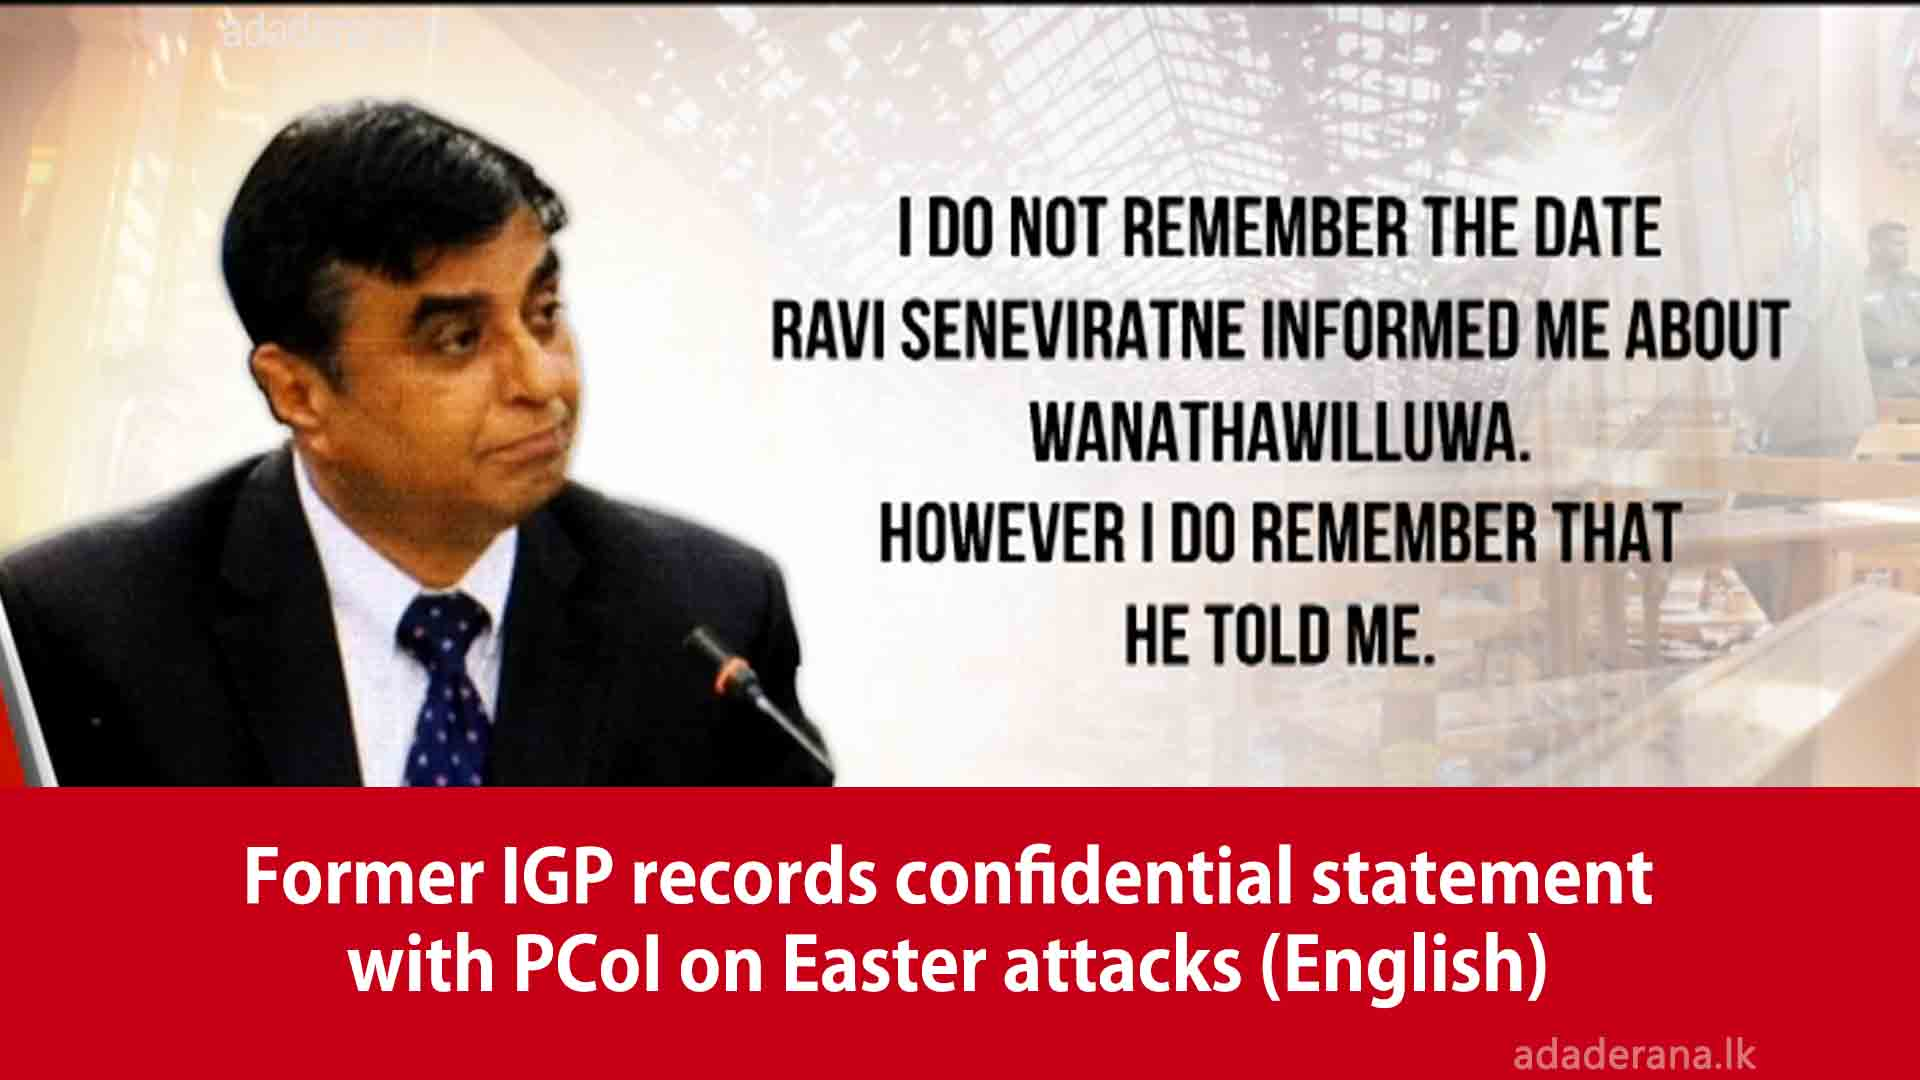 Former IGP records confidential statement with PCoI on Easter attacks (English)